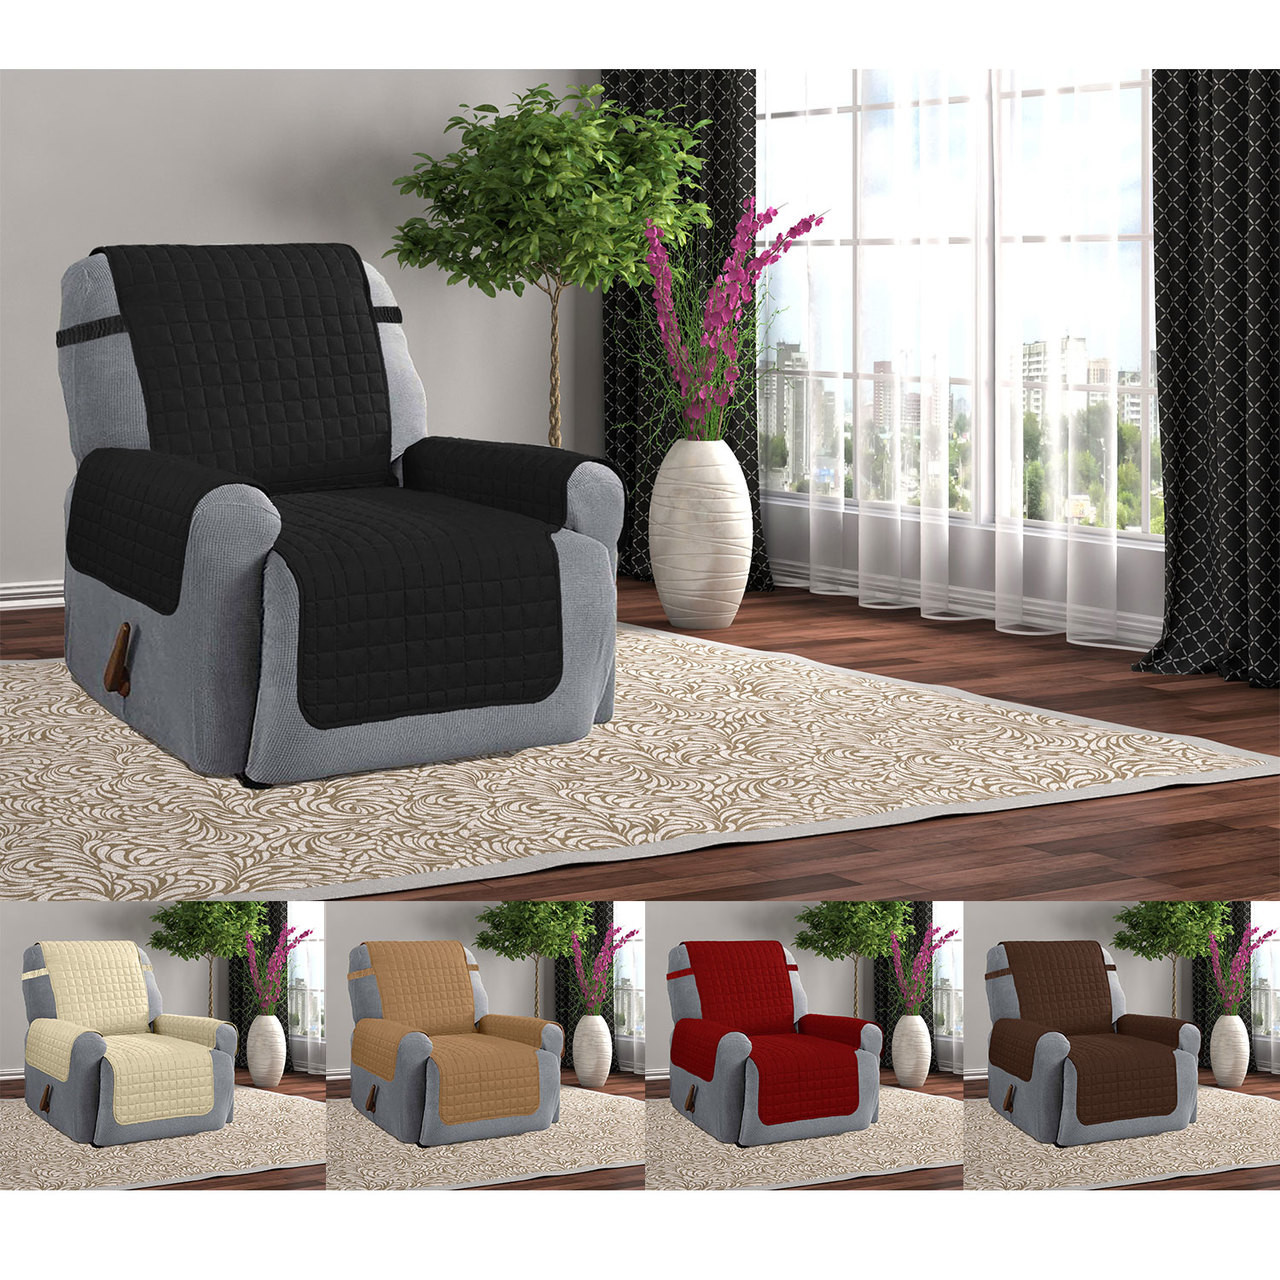 Quilted Microfiber Furniture Recliner Pet Protector Cover With Tucks u0026 Strap & Microfiber Furniture Recliner Pet Protector Cover With Tucks u0026 Strap islam-shia.org